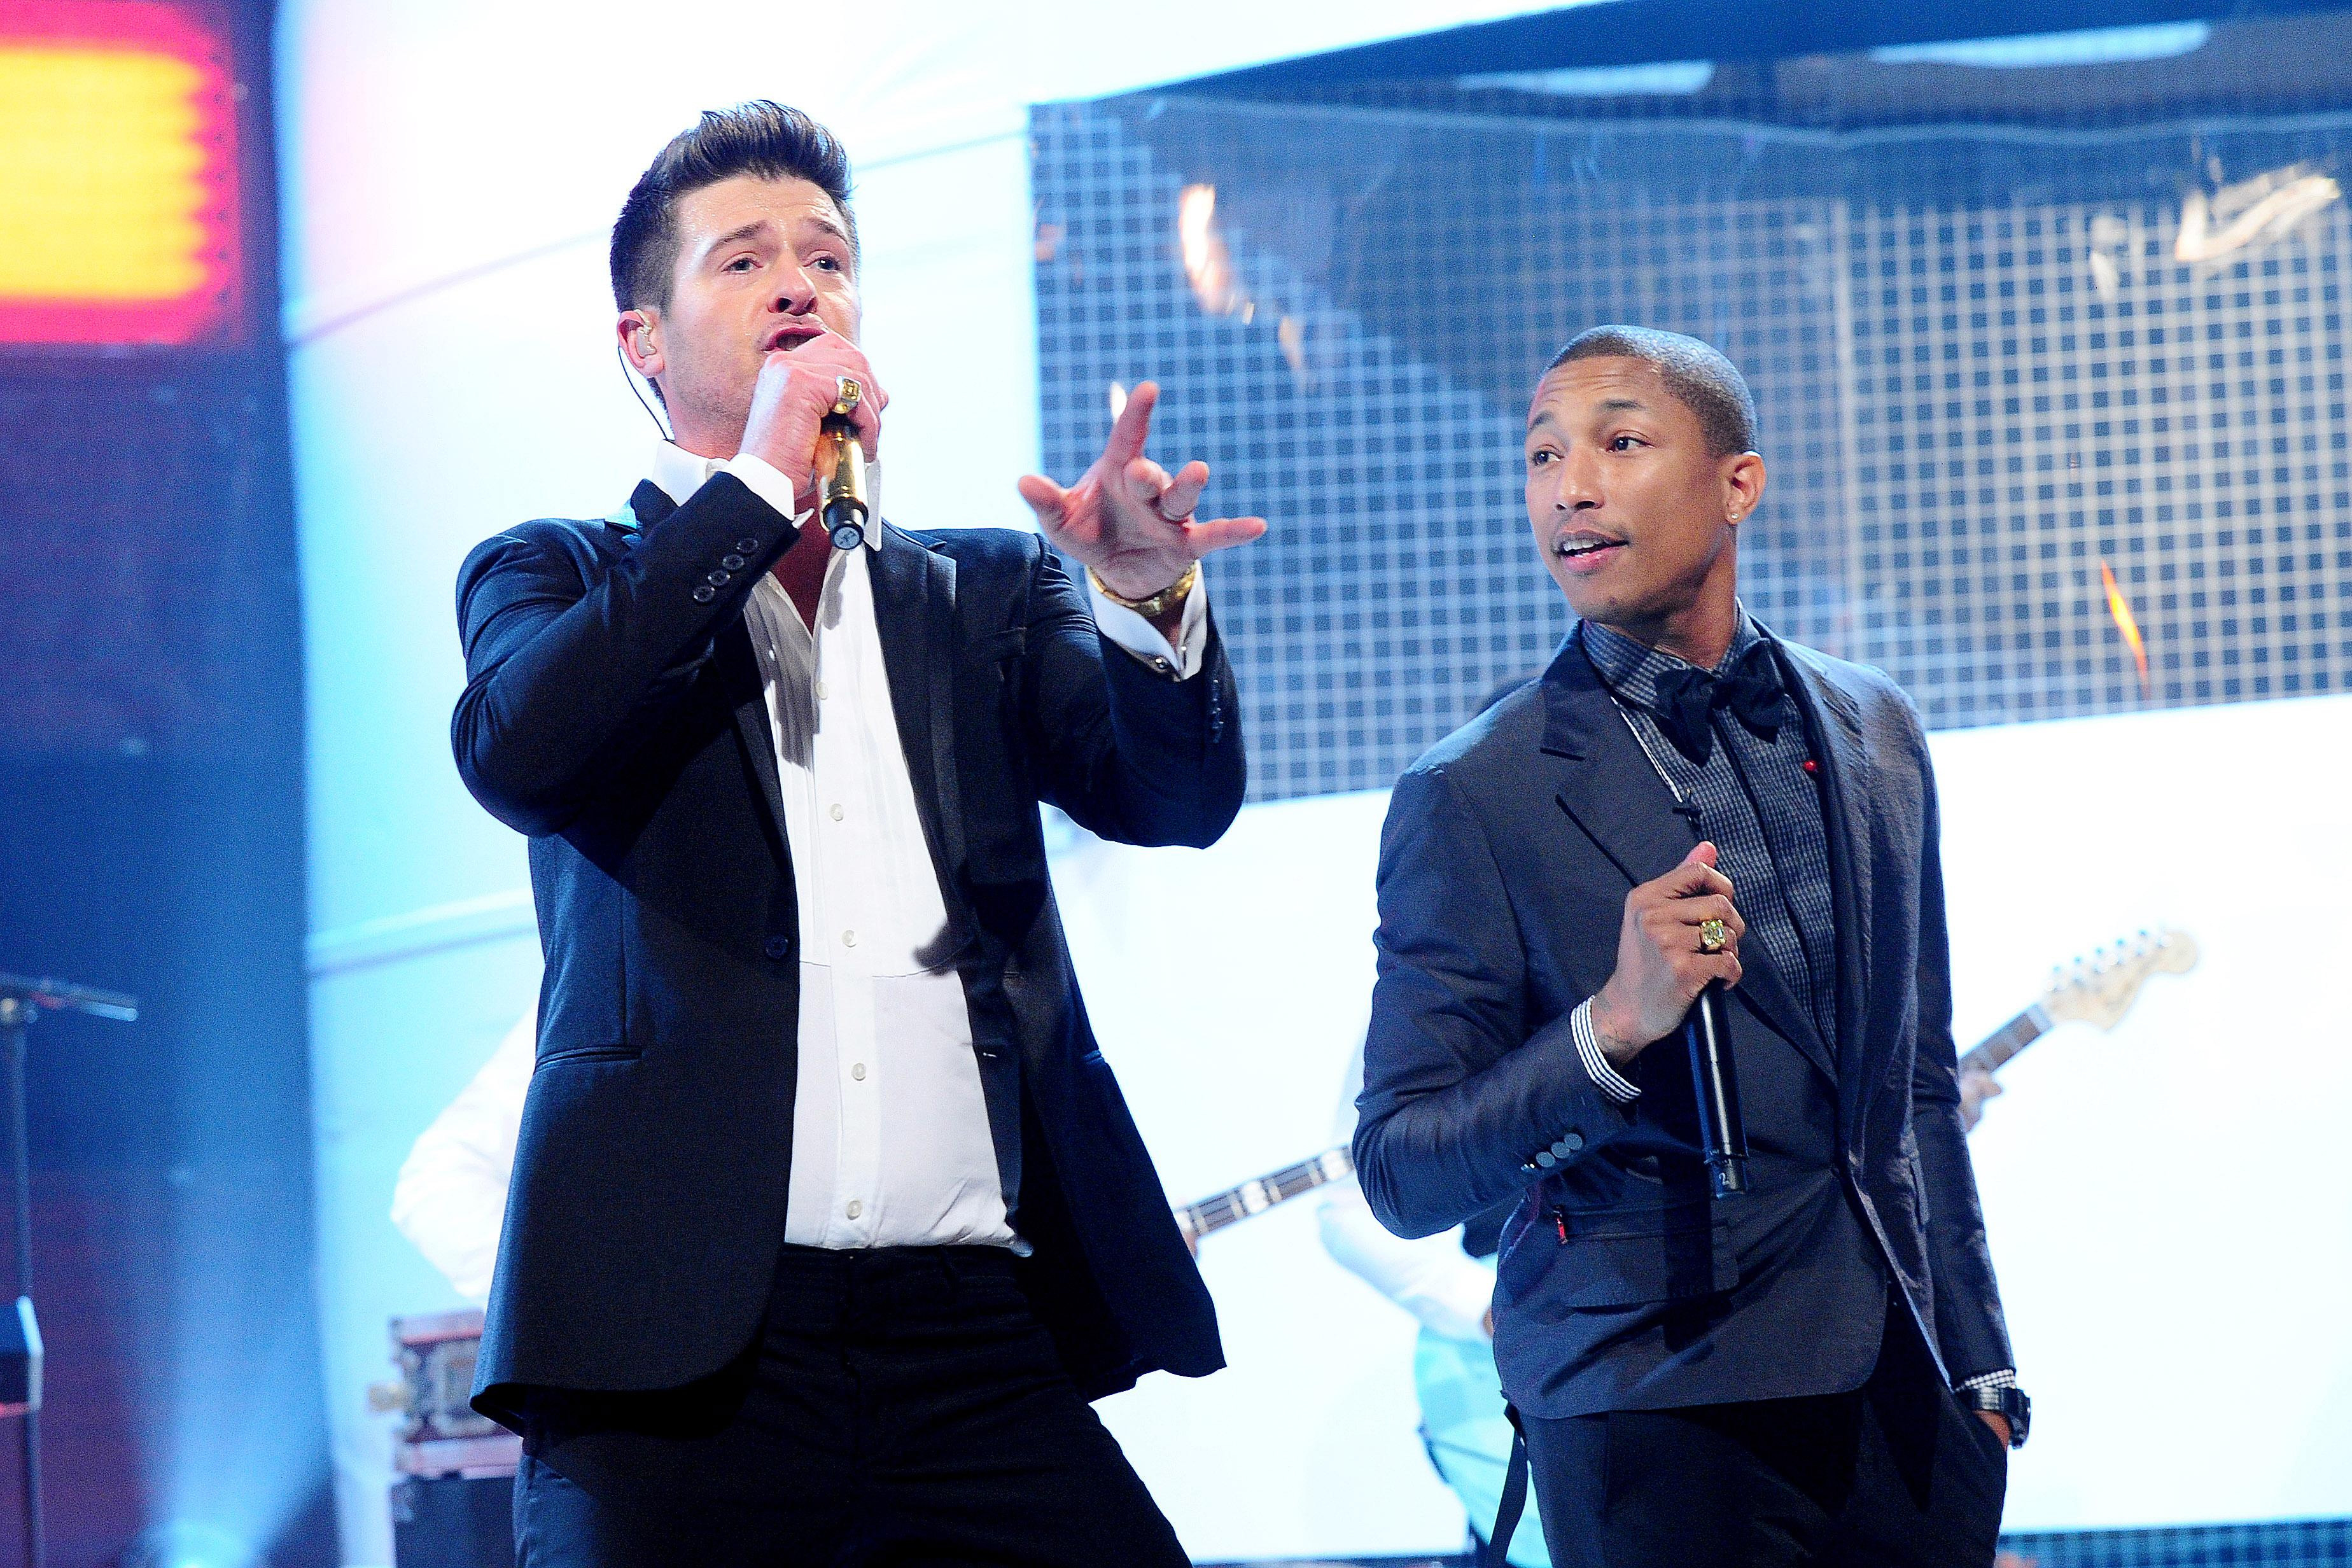 Robin Thicke and Pharrell performing in 2013.